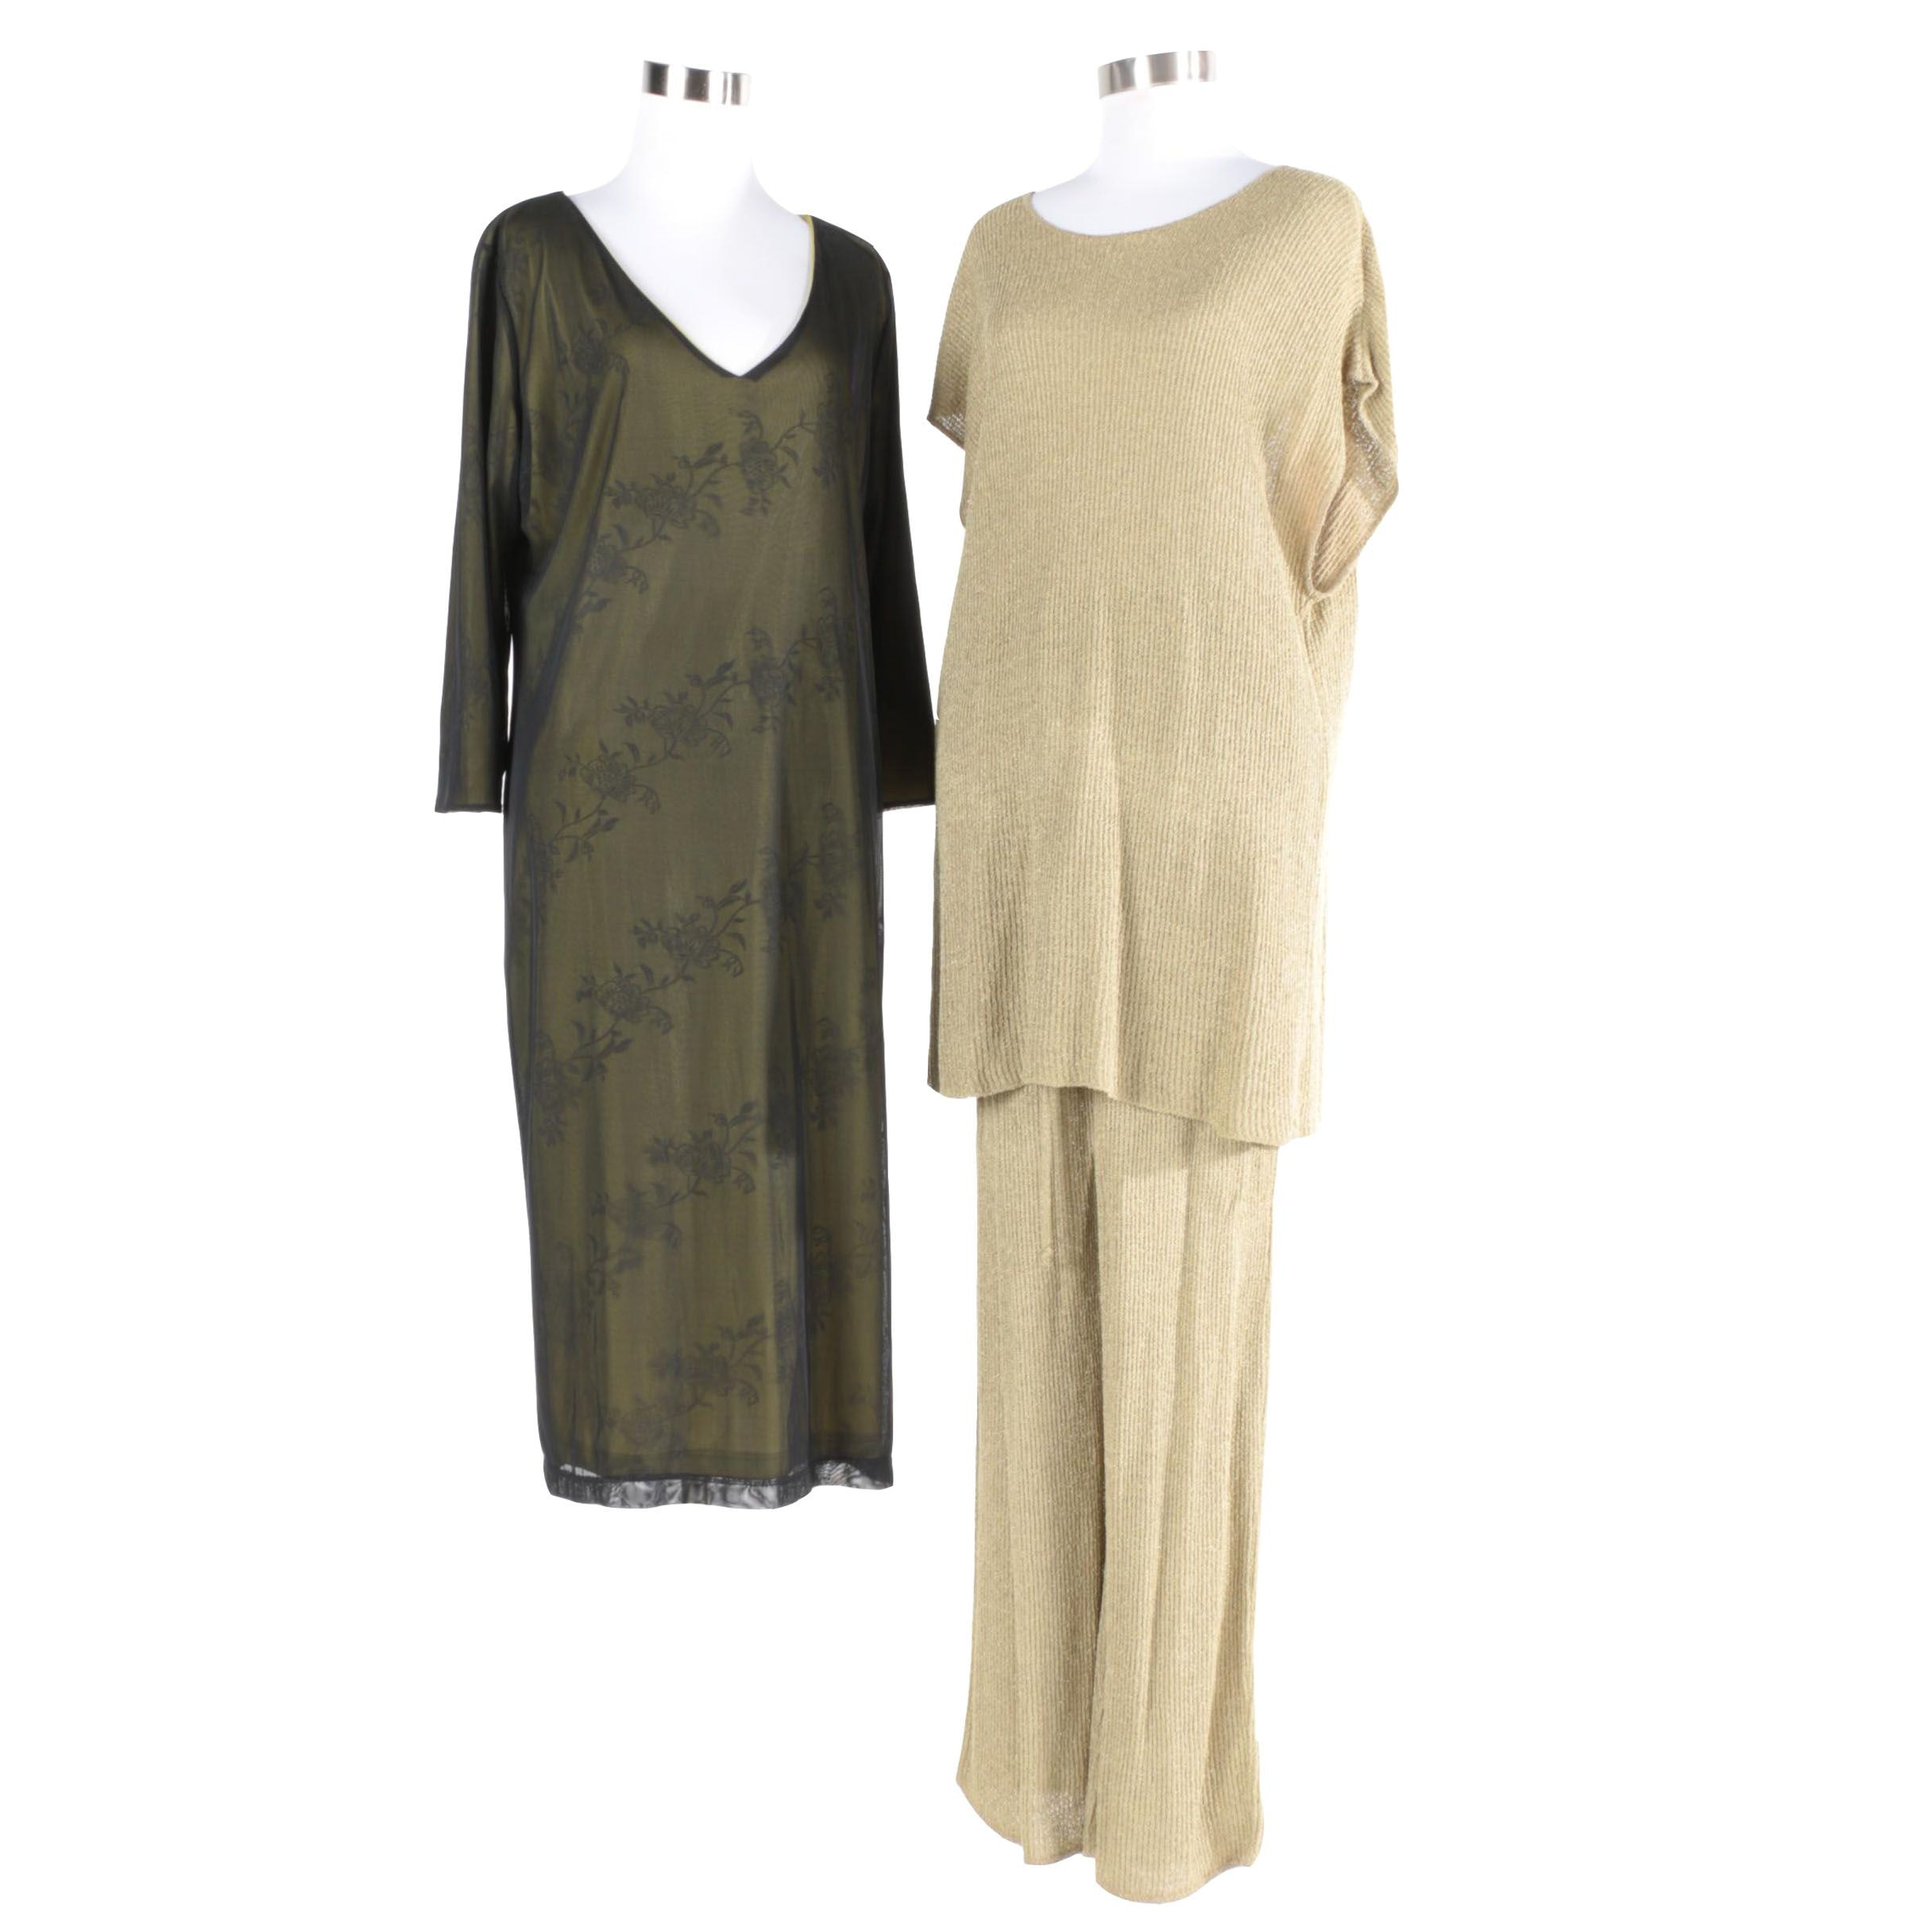 Women's BCBG Dress with Knitted Top and Skirt